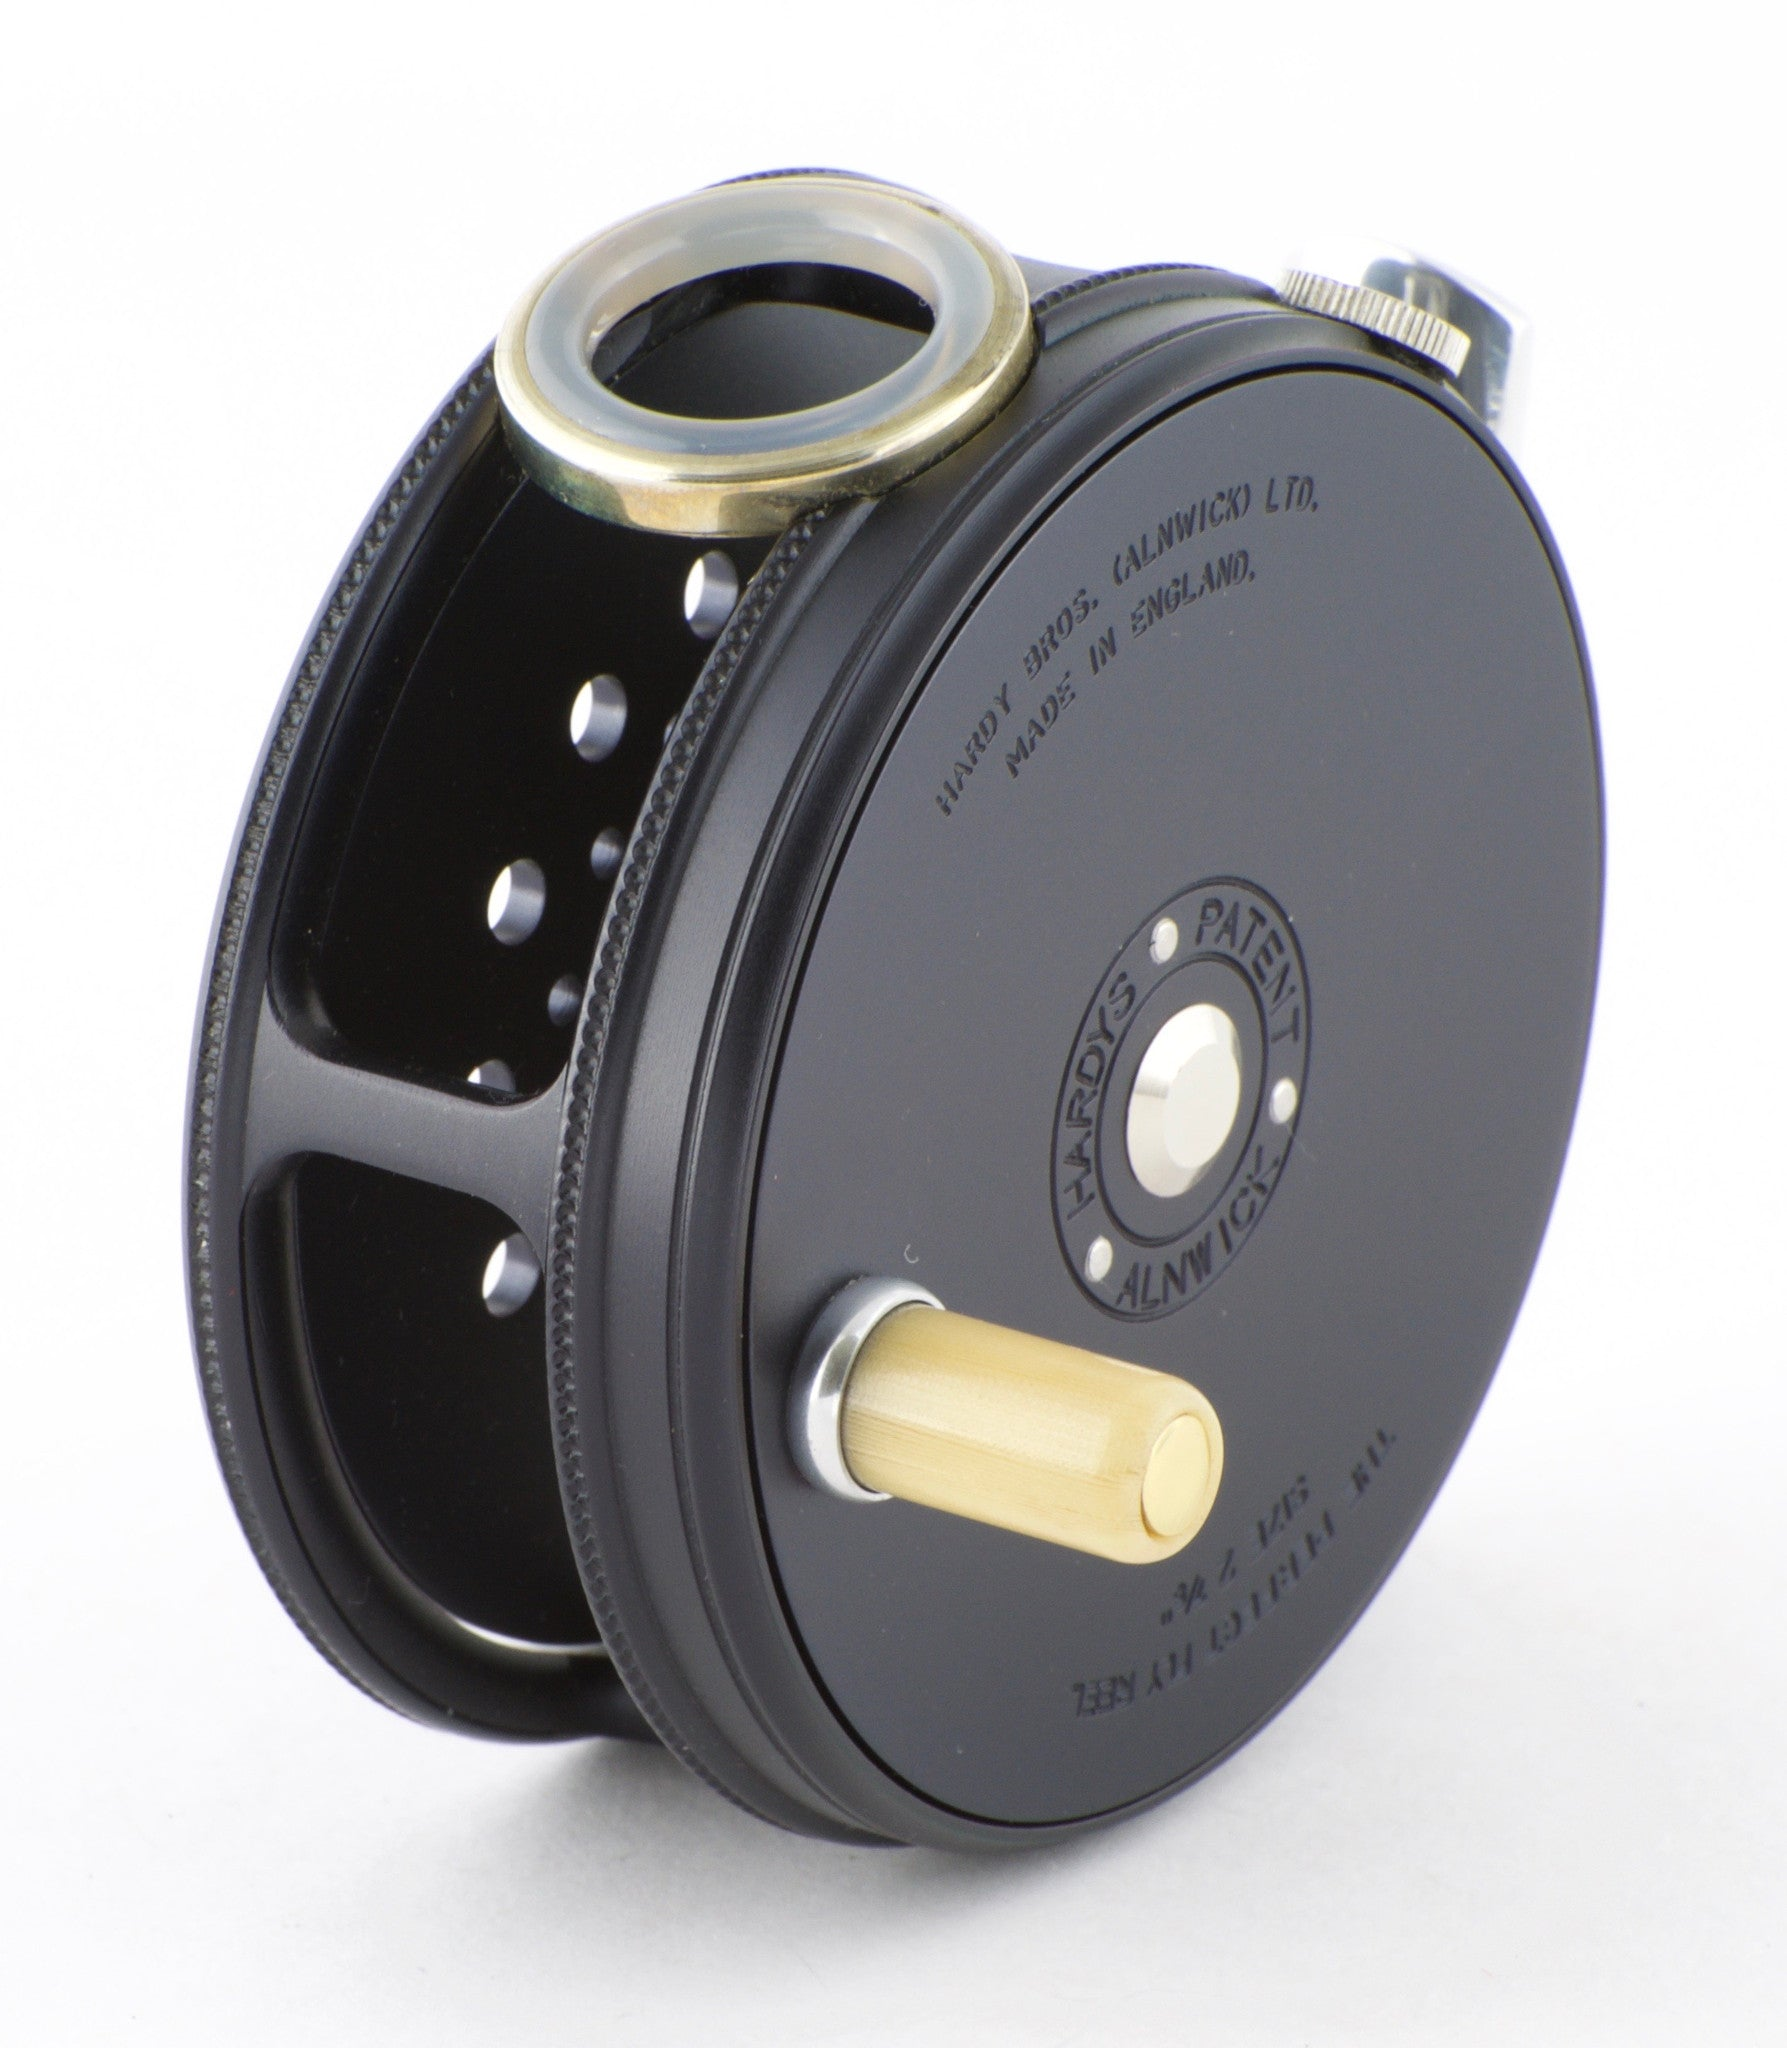 dating hardy perfect reels Hardy wide spool perfect fly reel beautiful classic fly reels the latest revision in over a century of the perfect this model features a wide spool for better capacity, a time proven check system, and that classic perfect sound.